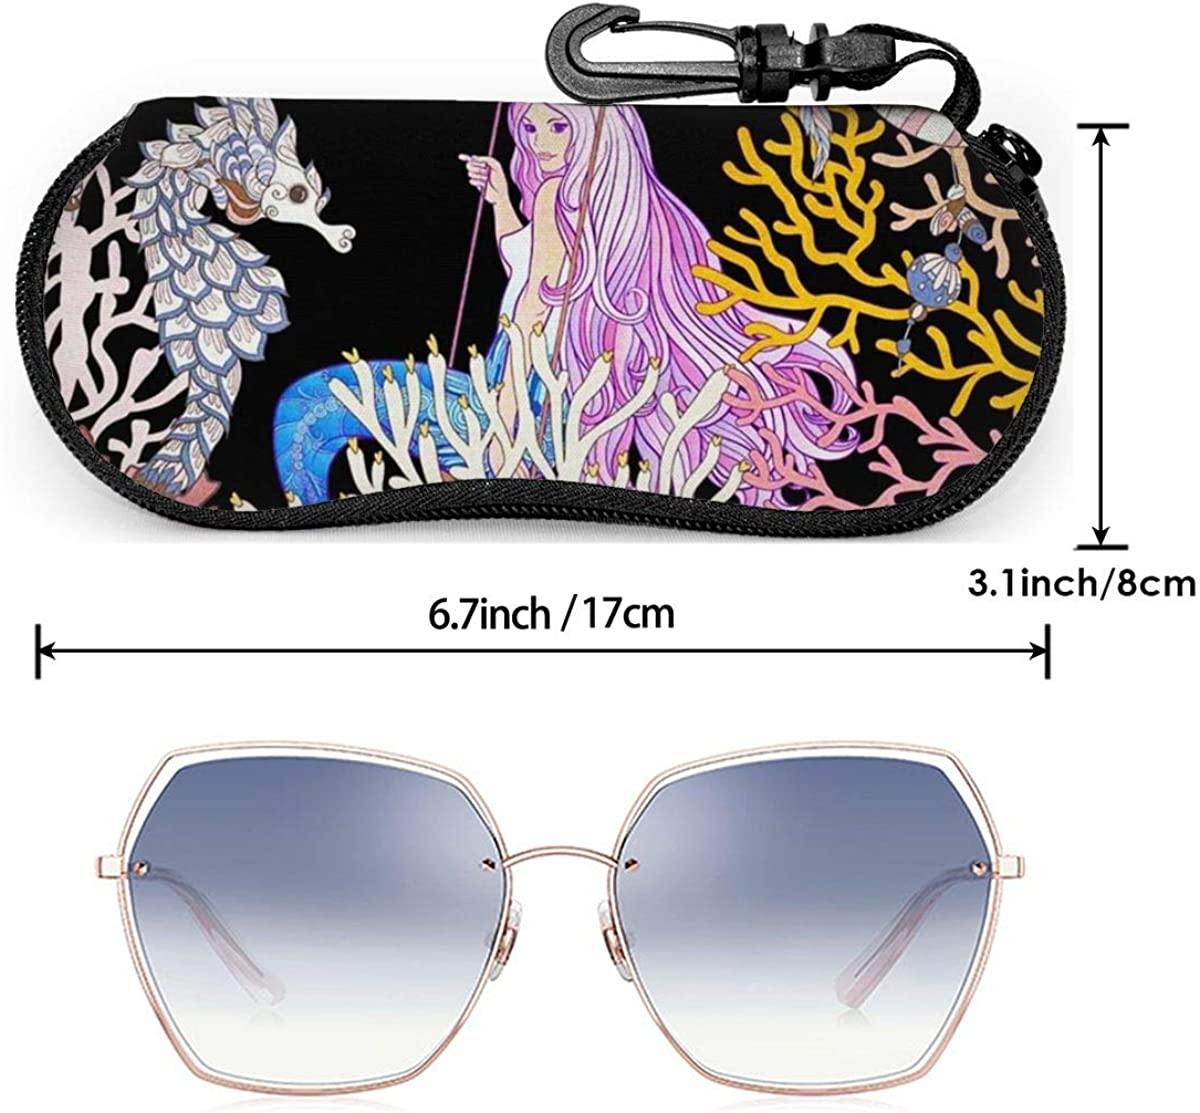 Cartoon Mermaid With Coral Sea Shell And Sea Horse Myth Painting Sunglasses Soft Case Ultra Light Neoprene Zipper Eyeglass Case With Key Chain